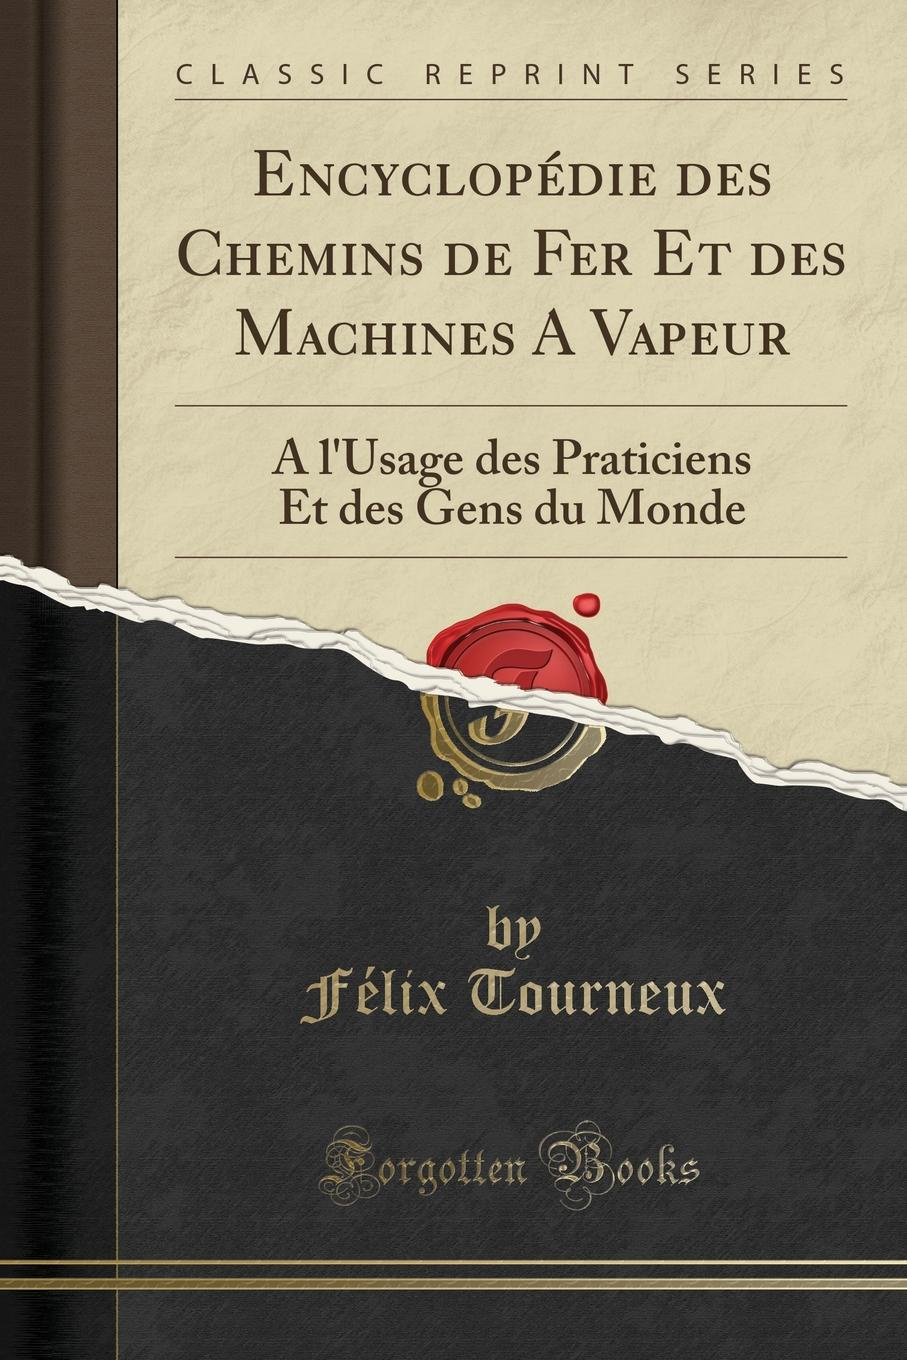 Félix Tourneux Encyclopedie des Chemins de Fer Et des Machines A Vapeur. A l.Usage des Praticiens Et des Gens du Monde (Classic Reprint) françois calot traitement rationnel du mal de pott a l usage des praticiens